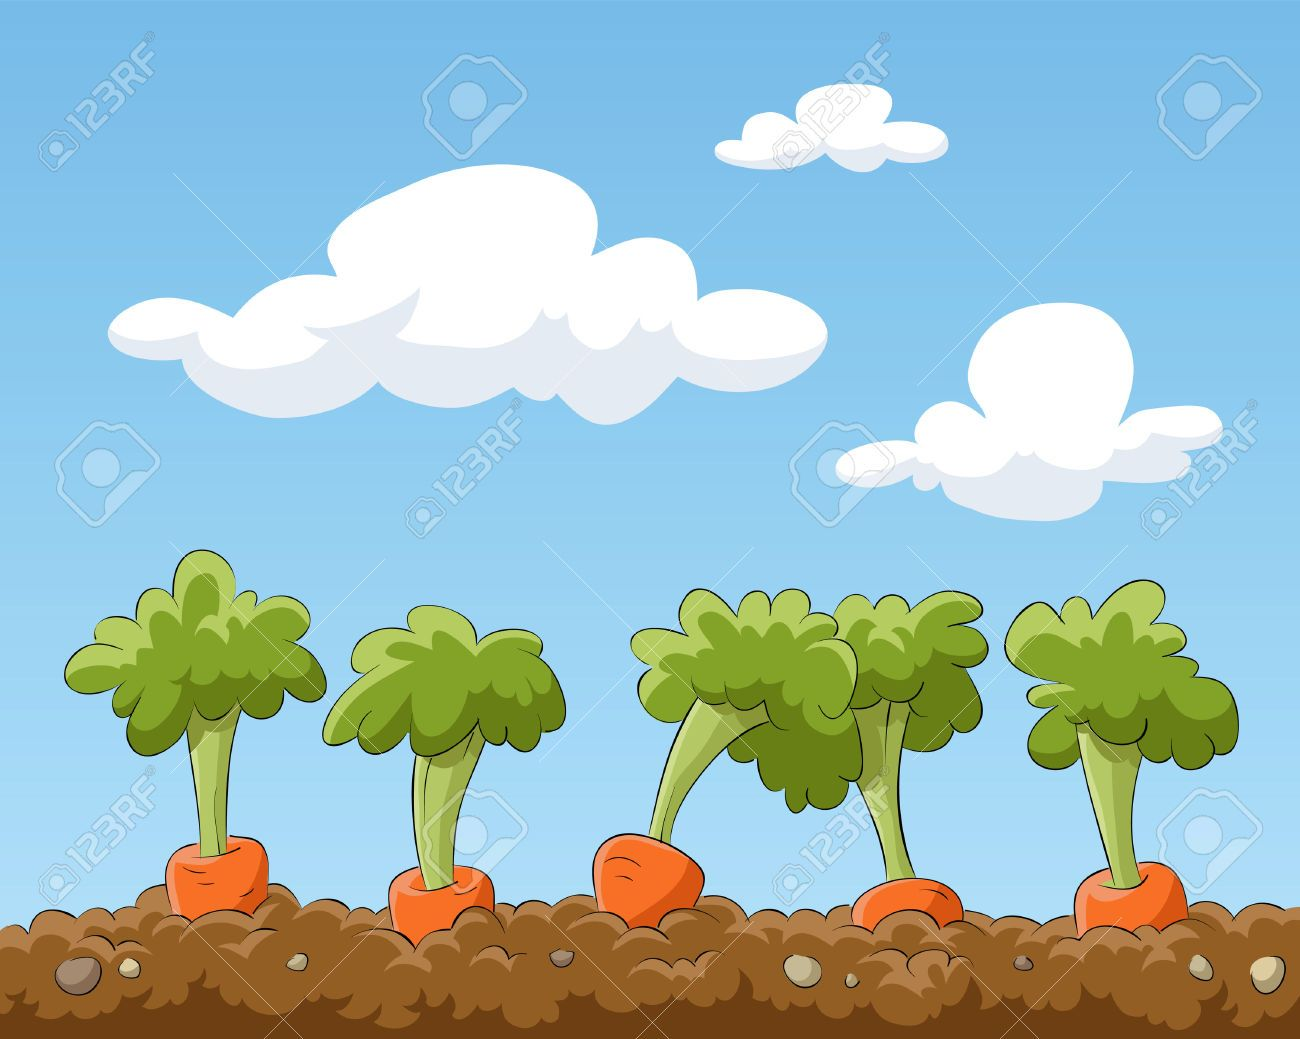 Vegetable field clipart vector image freeuse library Pin by simon dewey on inspiration | Cartoon garden, Garden ... image freeuse library